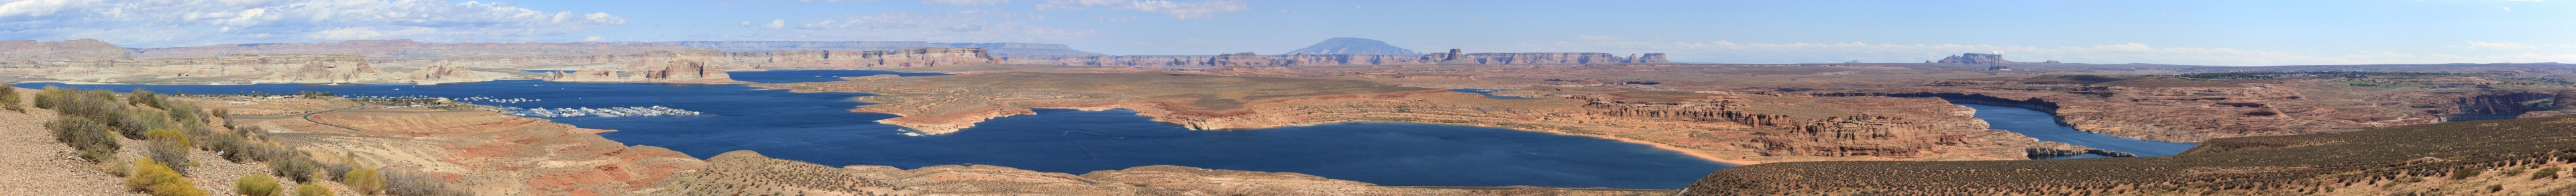 Glen Canyon/Wahweap. The southern end of the Glen Canyon Recreation Area -- the Wahweap Harbour on the left and the Hydro dam at Page on the right.